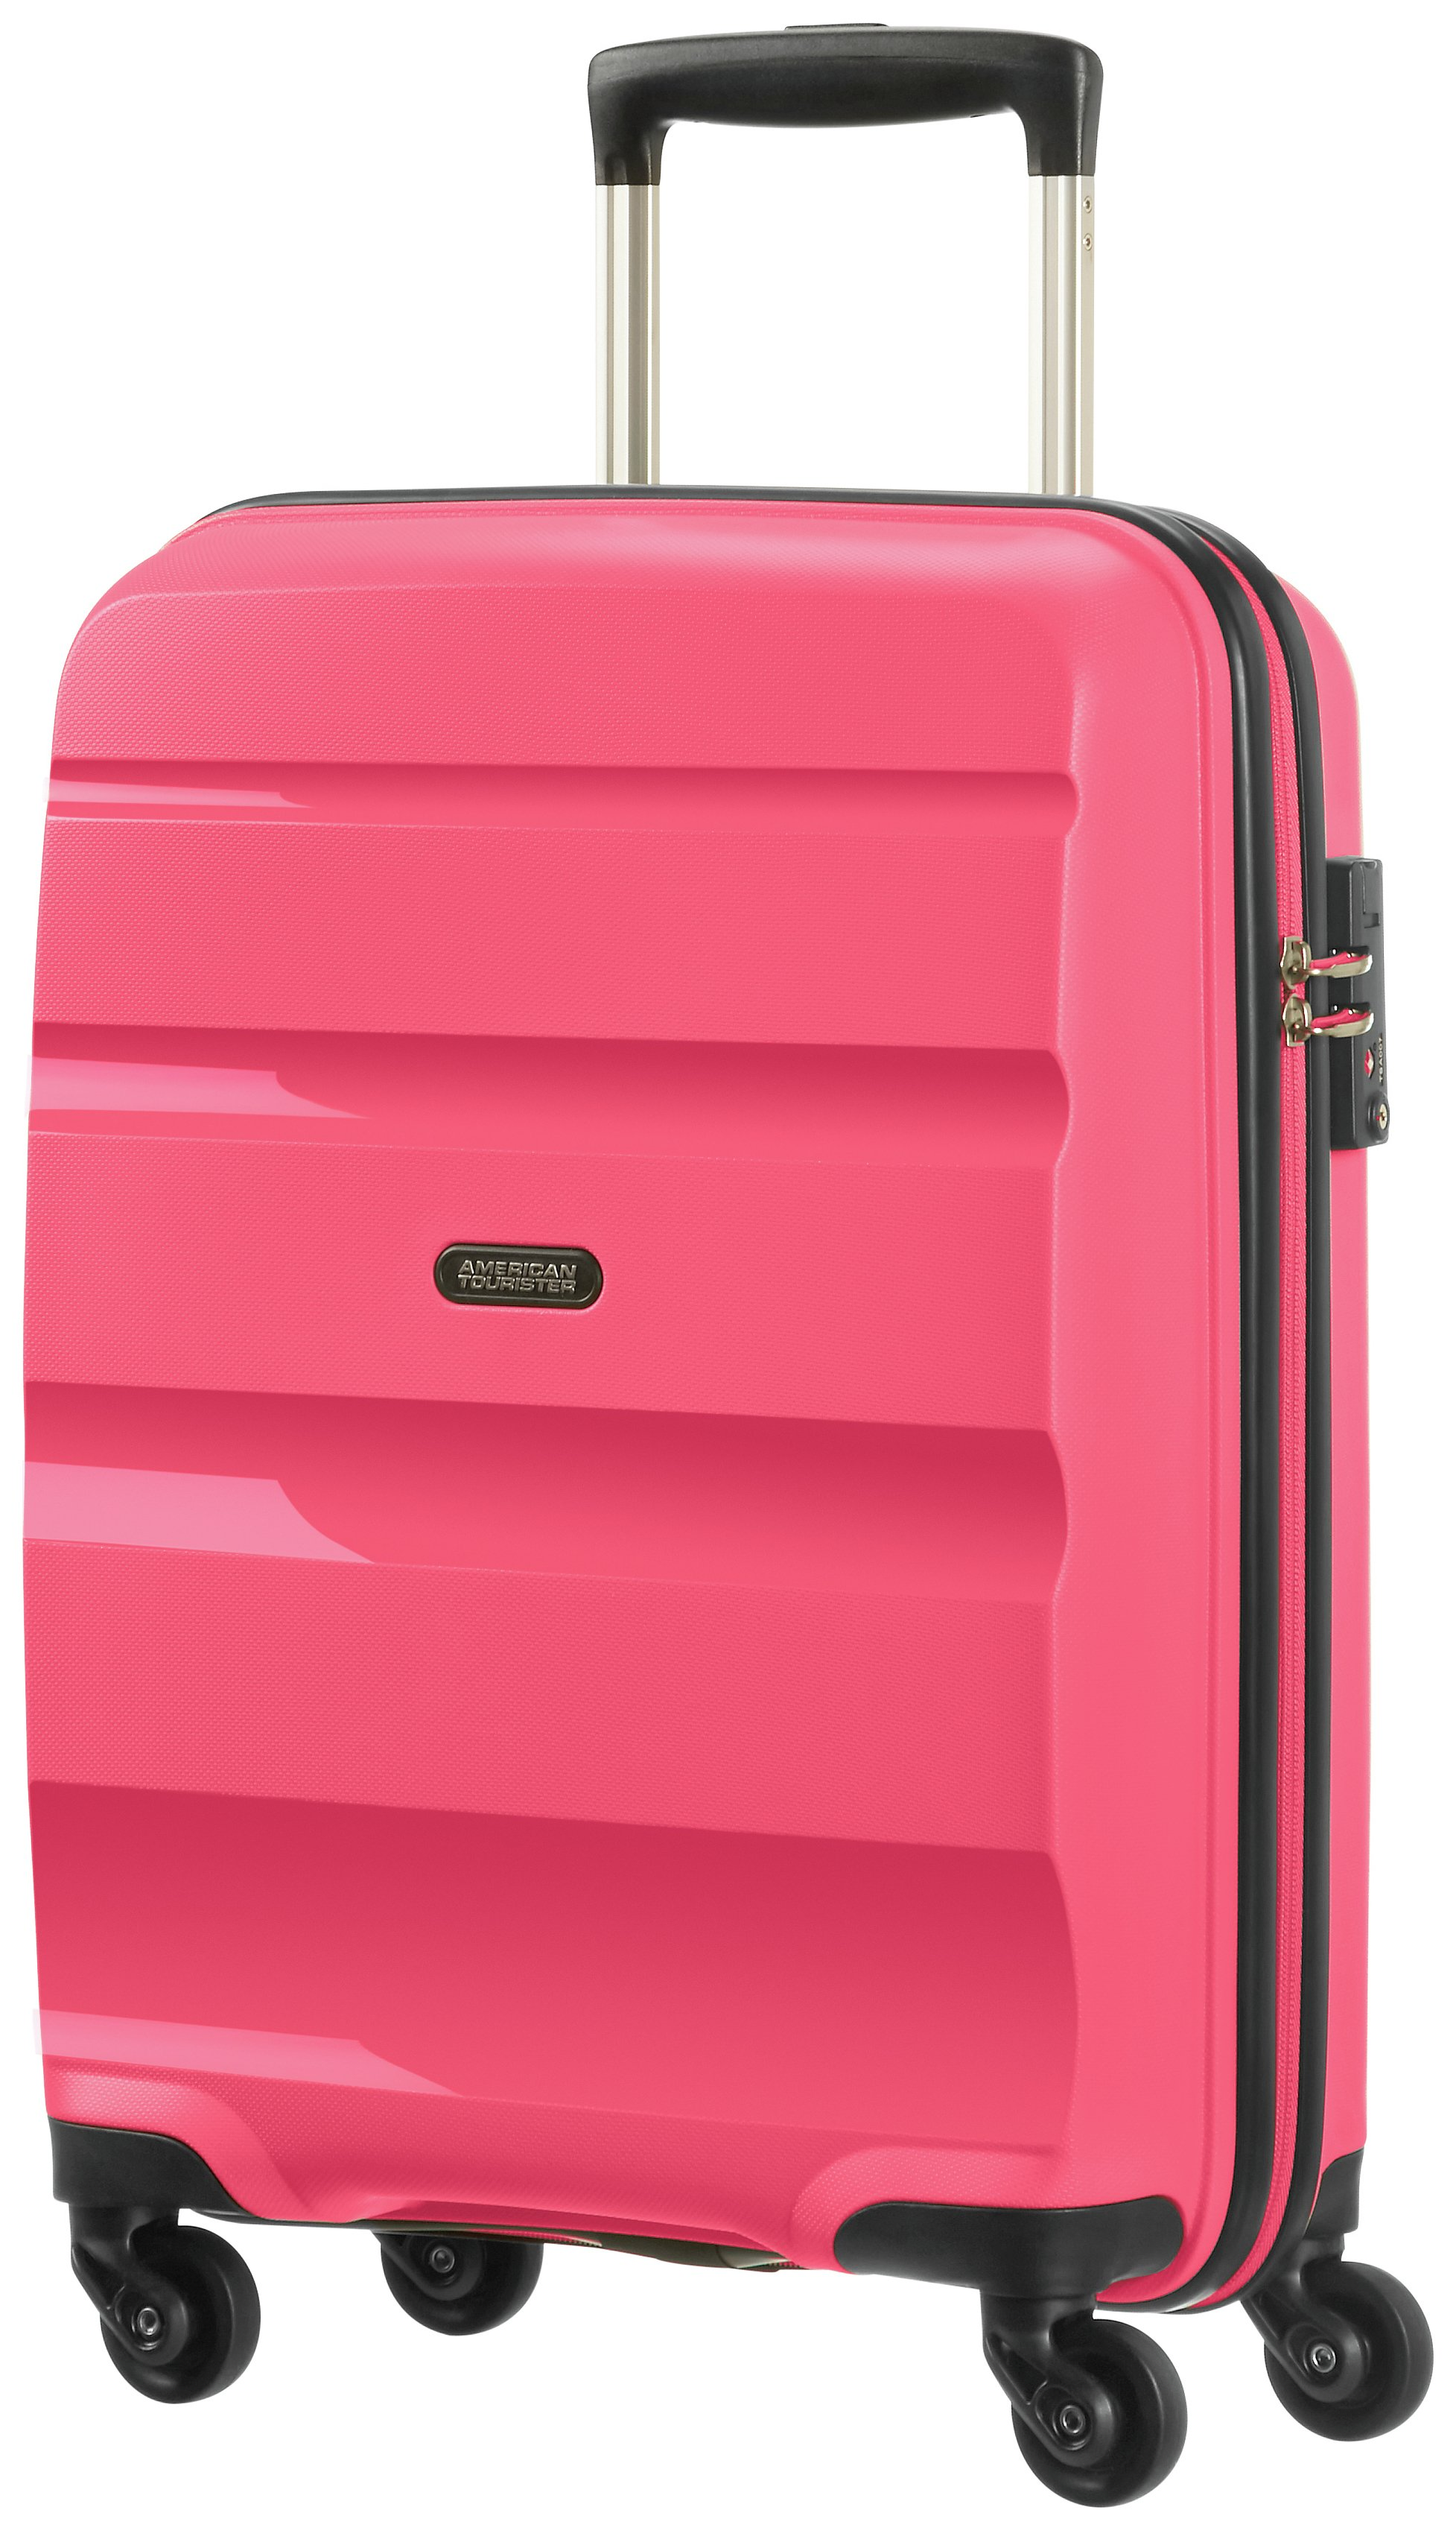 Image of American Tourister Bon Air 4 Wheel Spinner - Fresh Pink